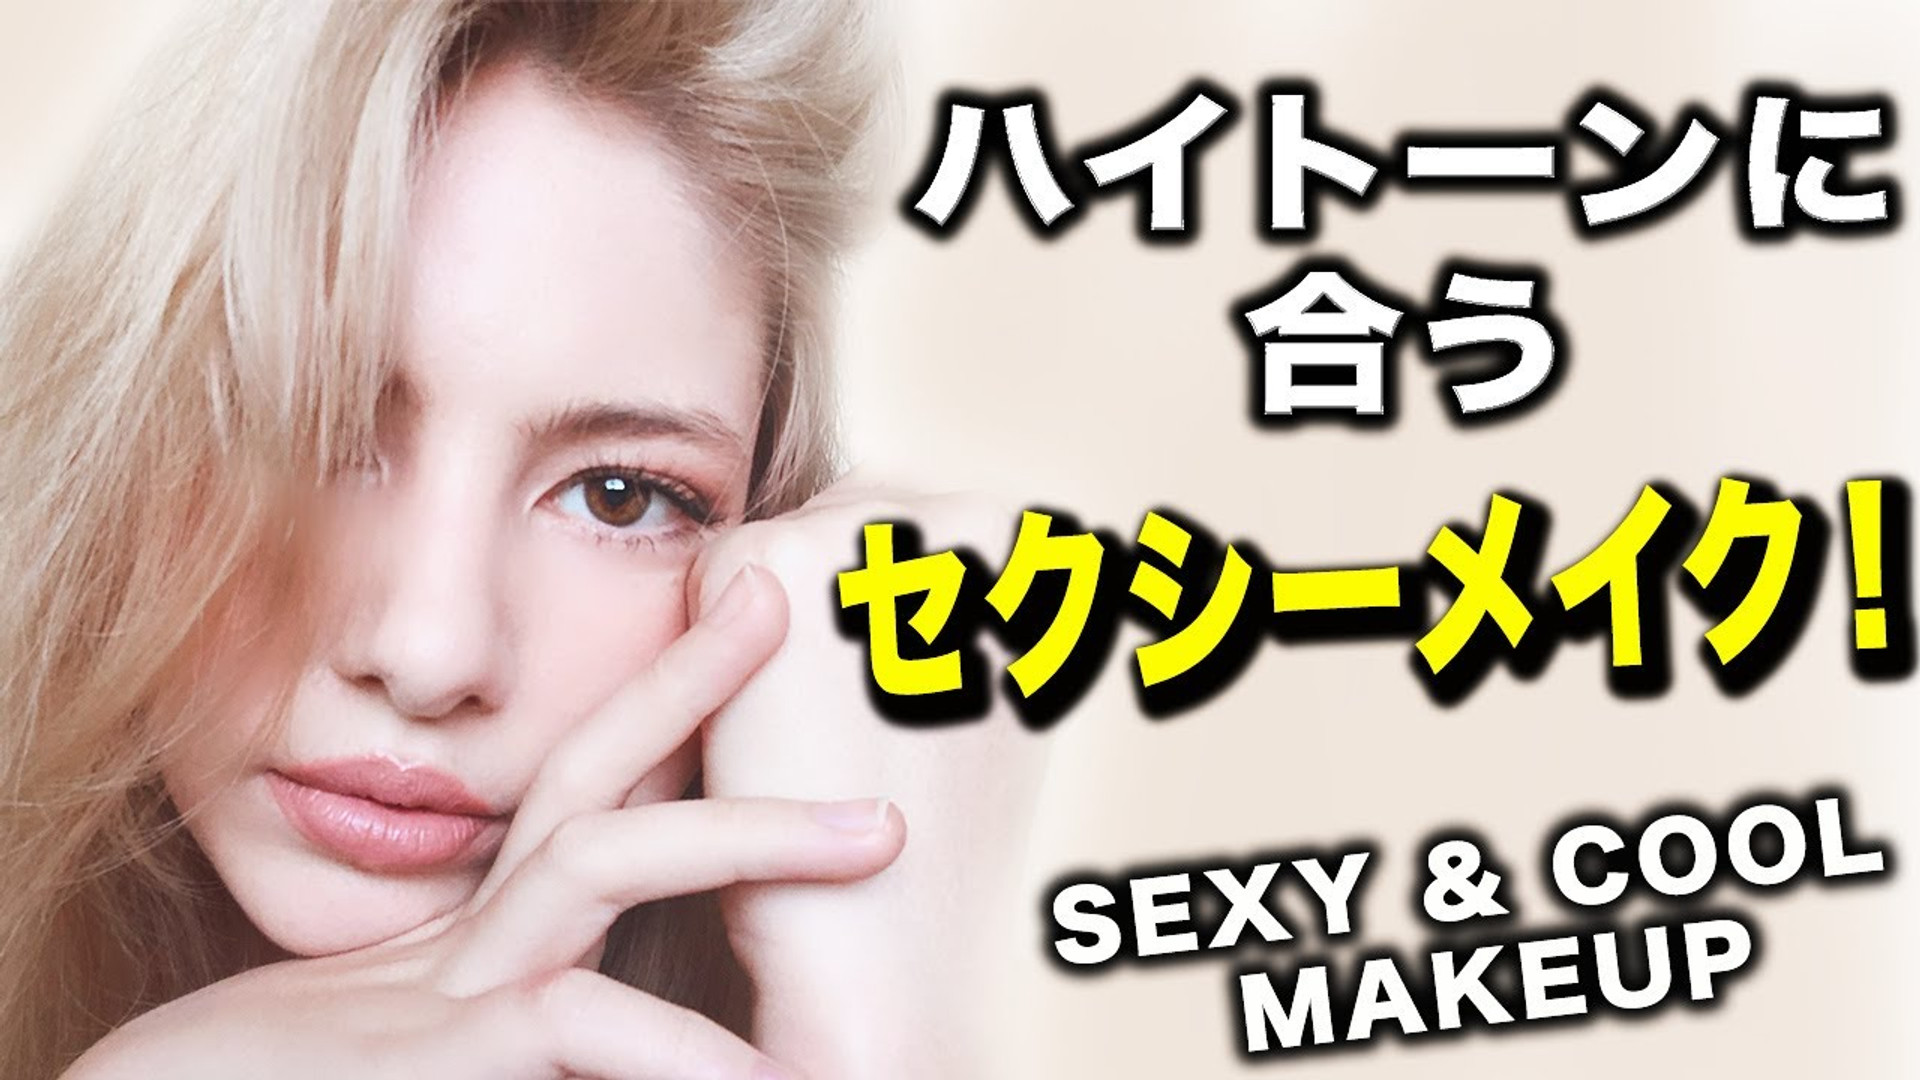 Sexy & cool makeup - Youtube